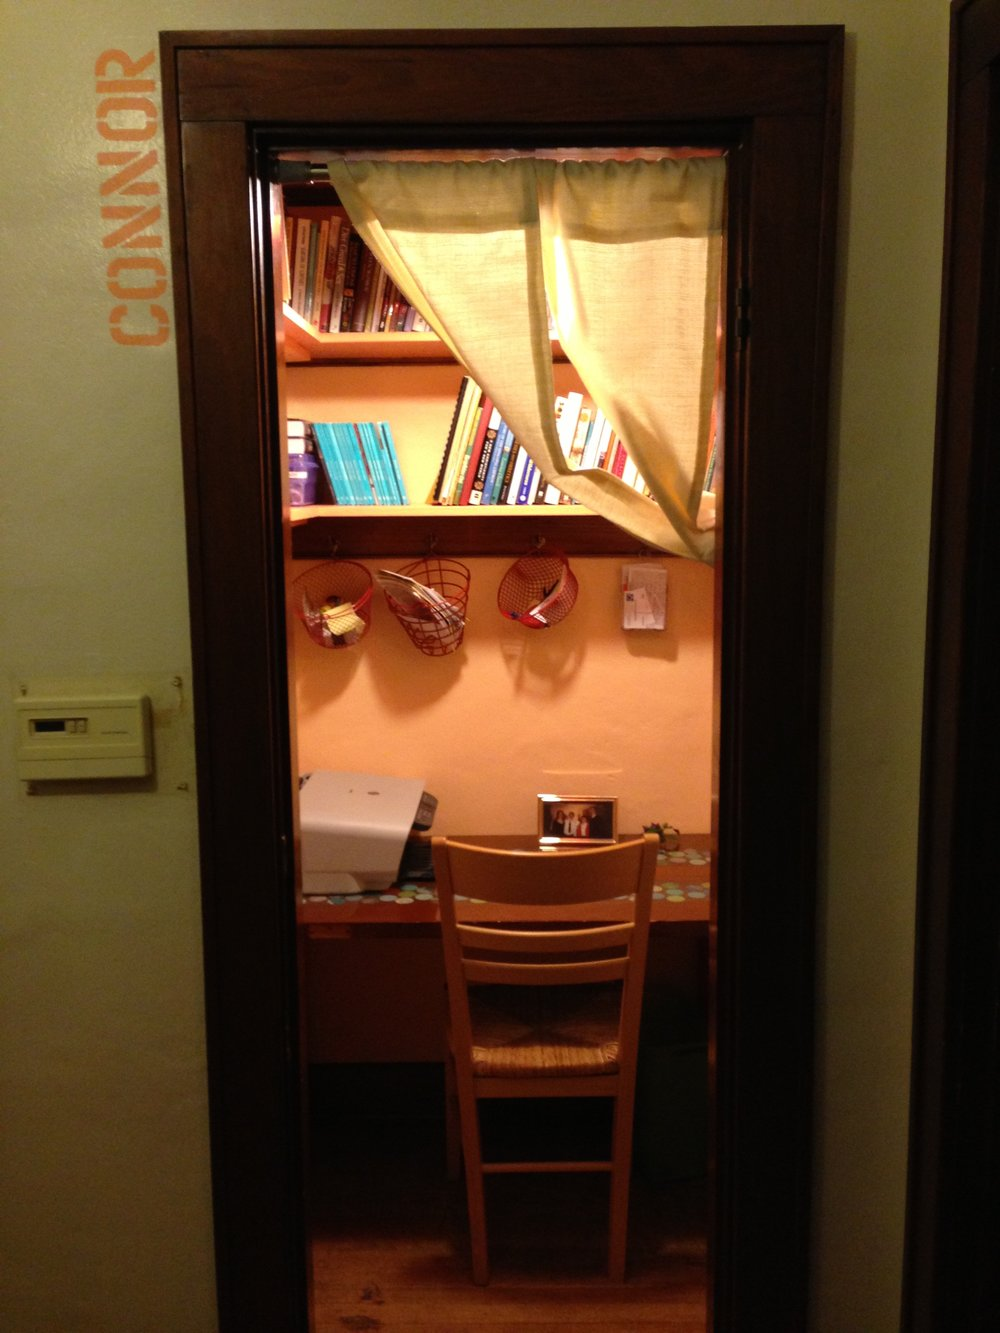 Alice's new closet office, or cloffice